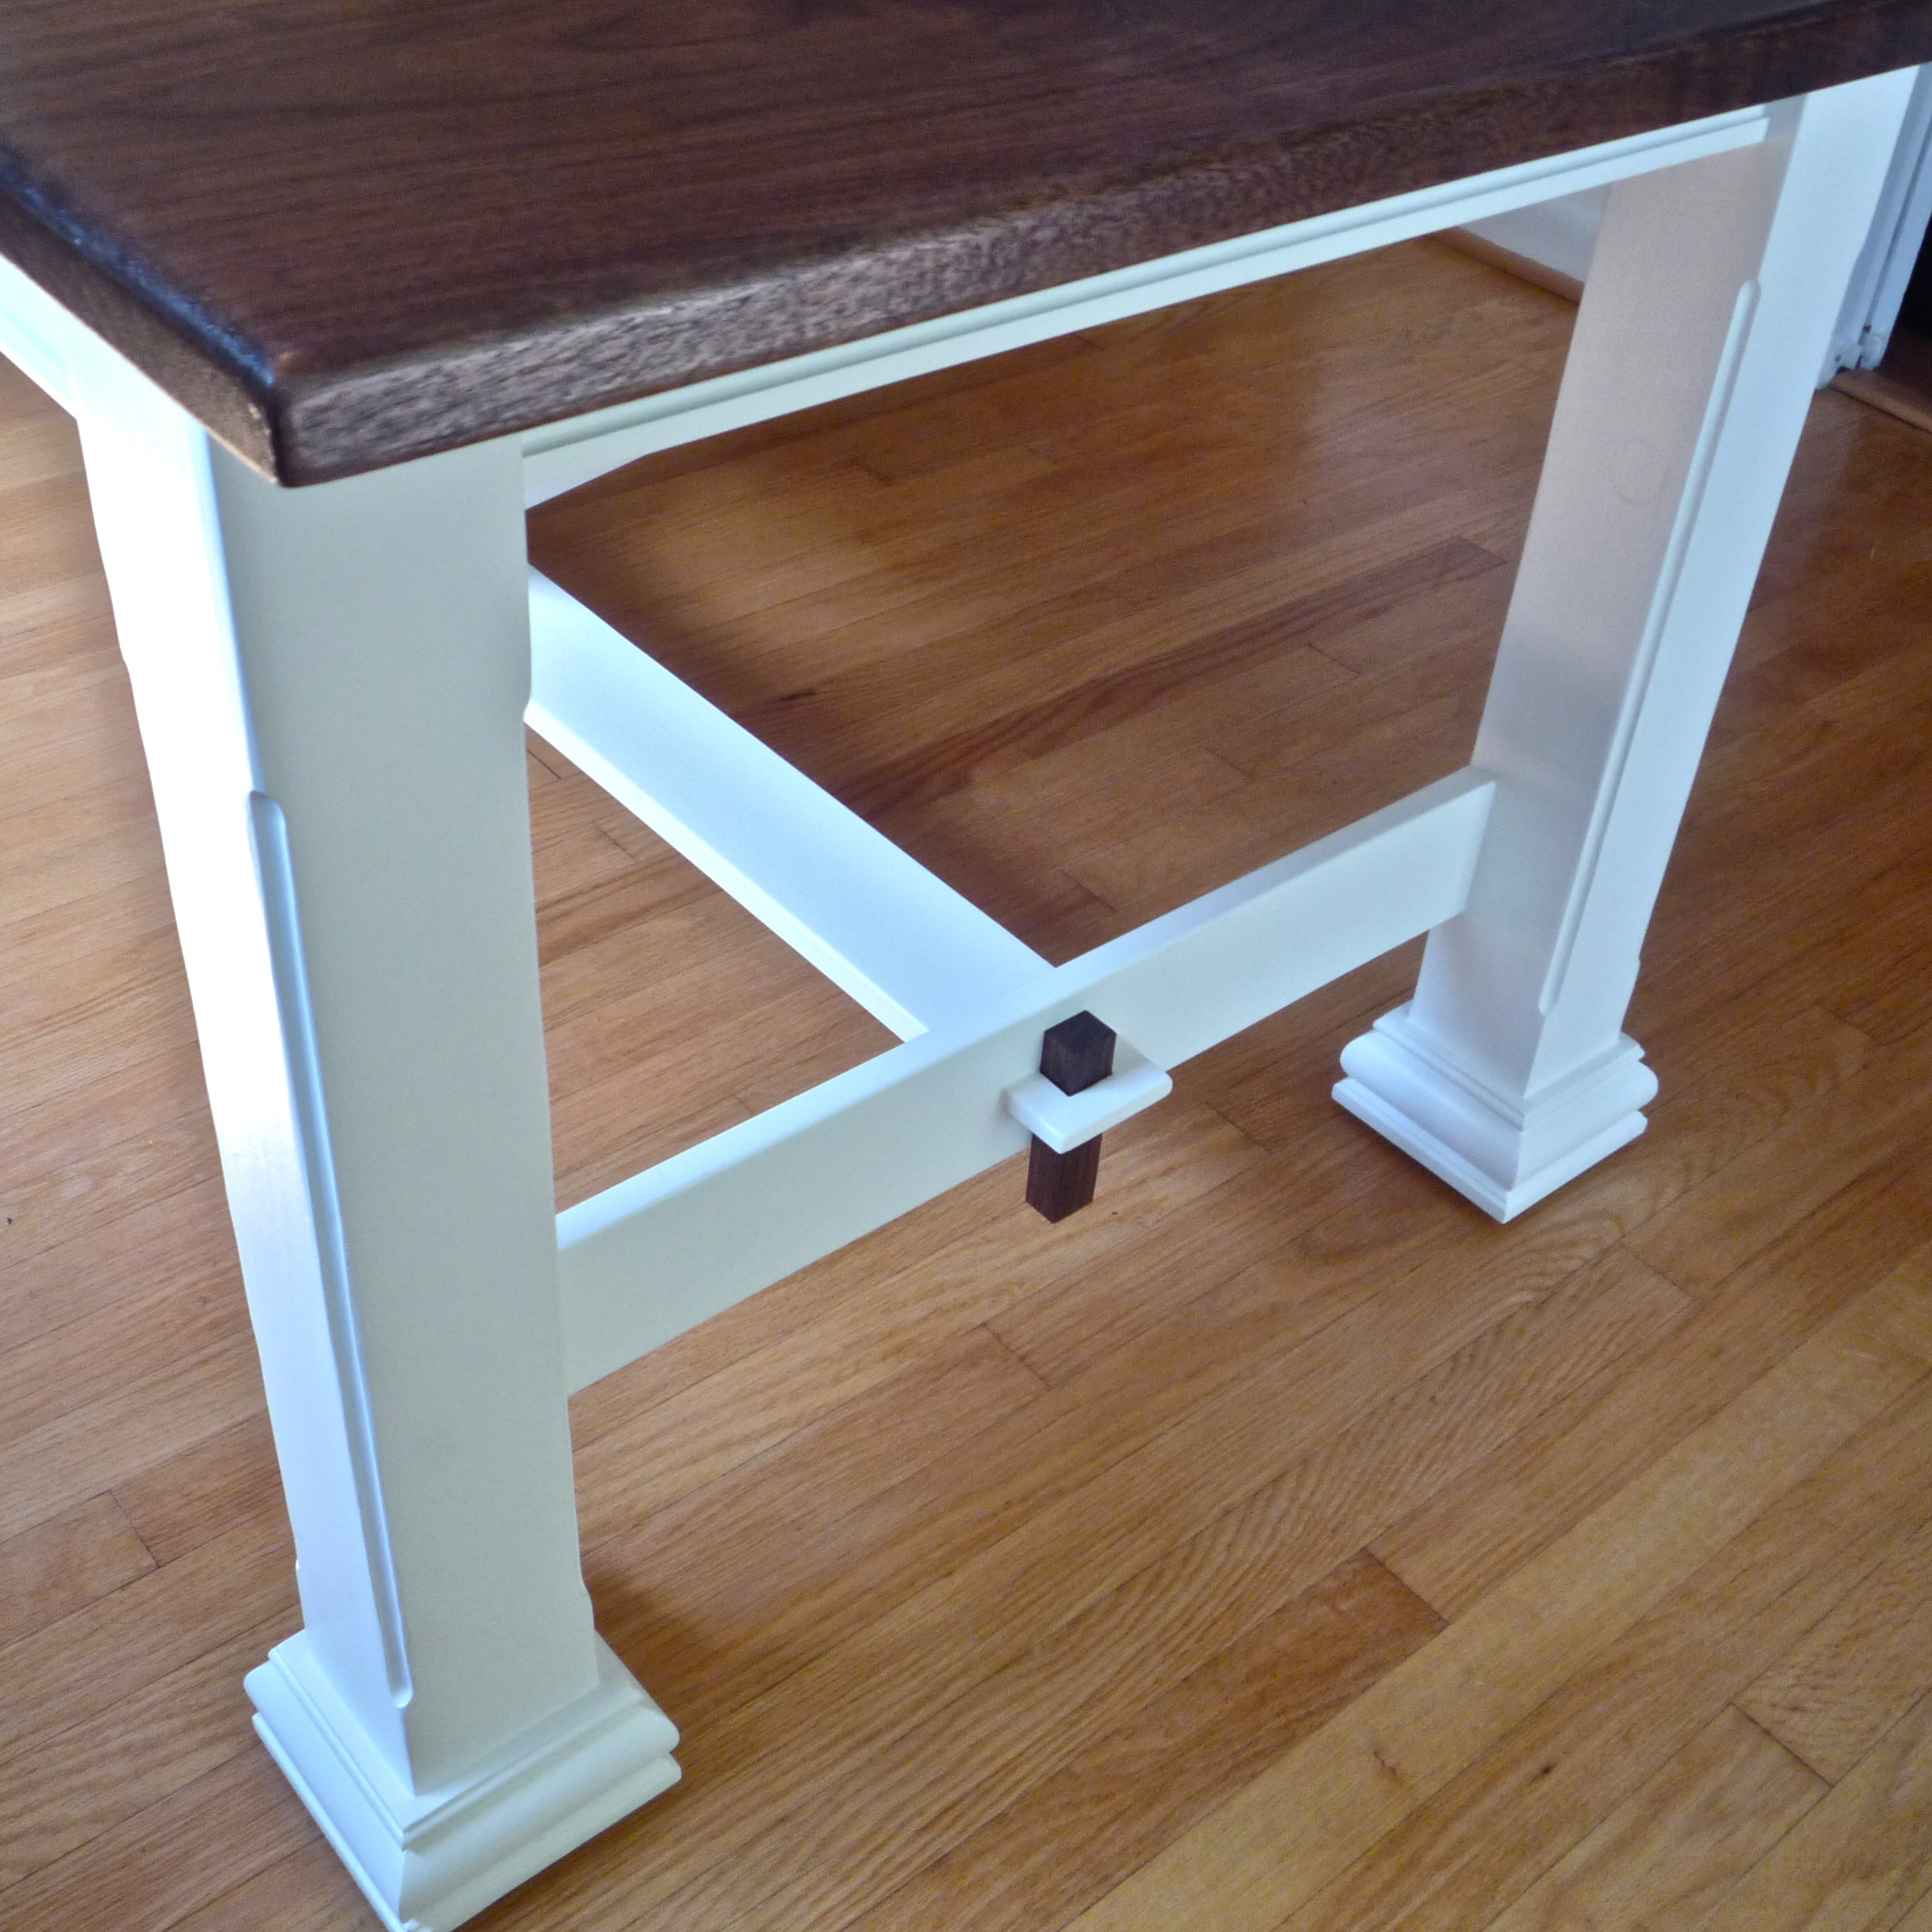 Handcrafted cz woodworking for Table joints